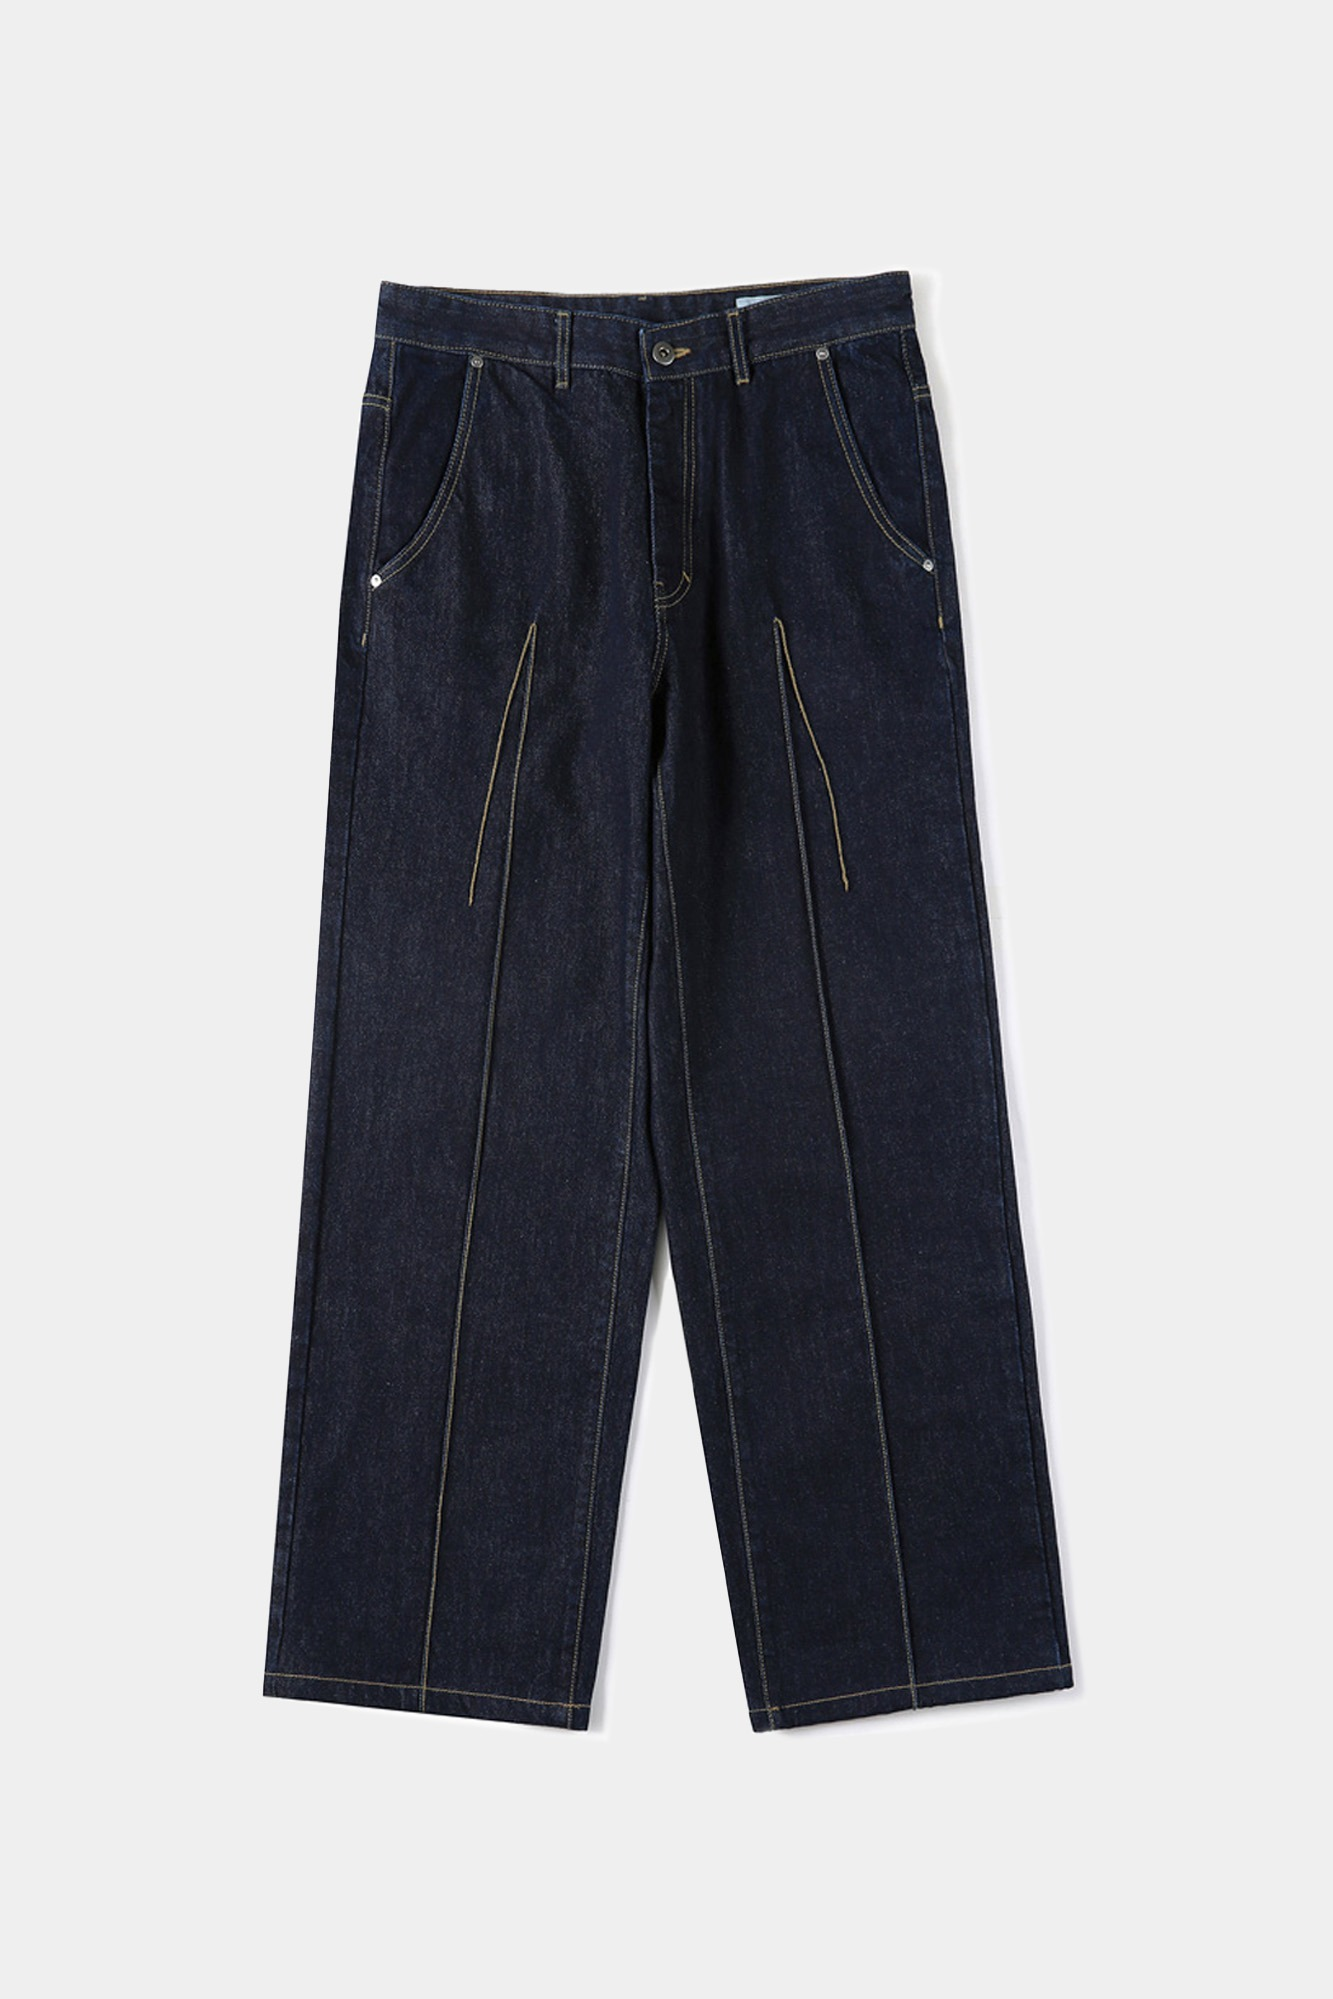 "SHIRTER Wide Original Denim Pants ""Indigo"""